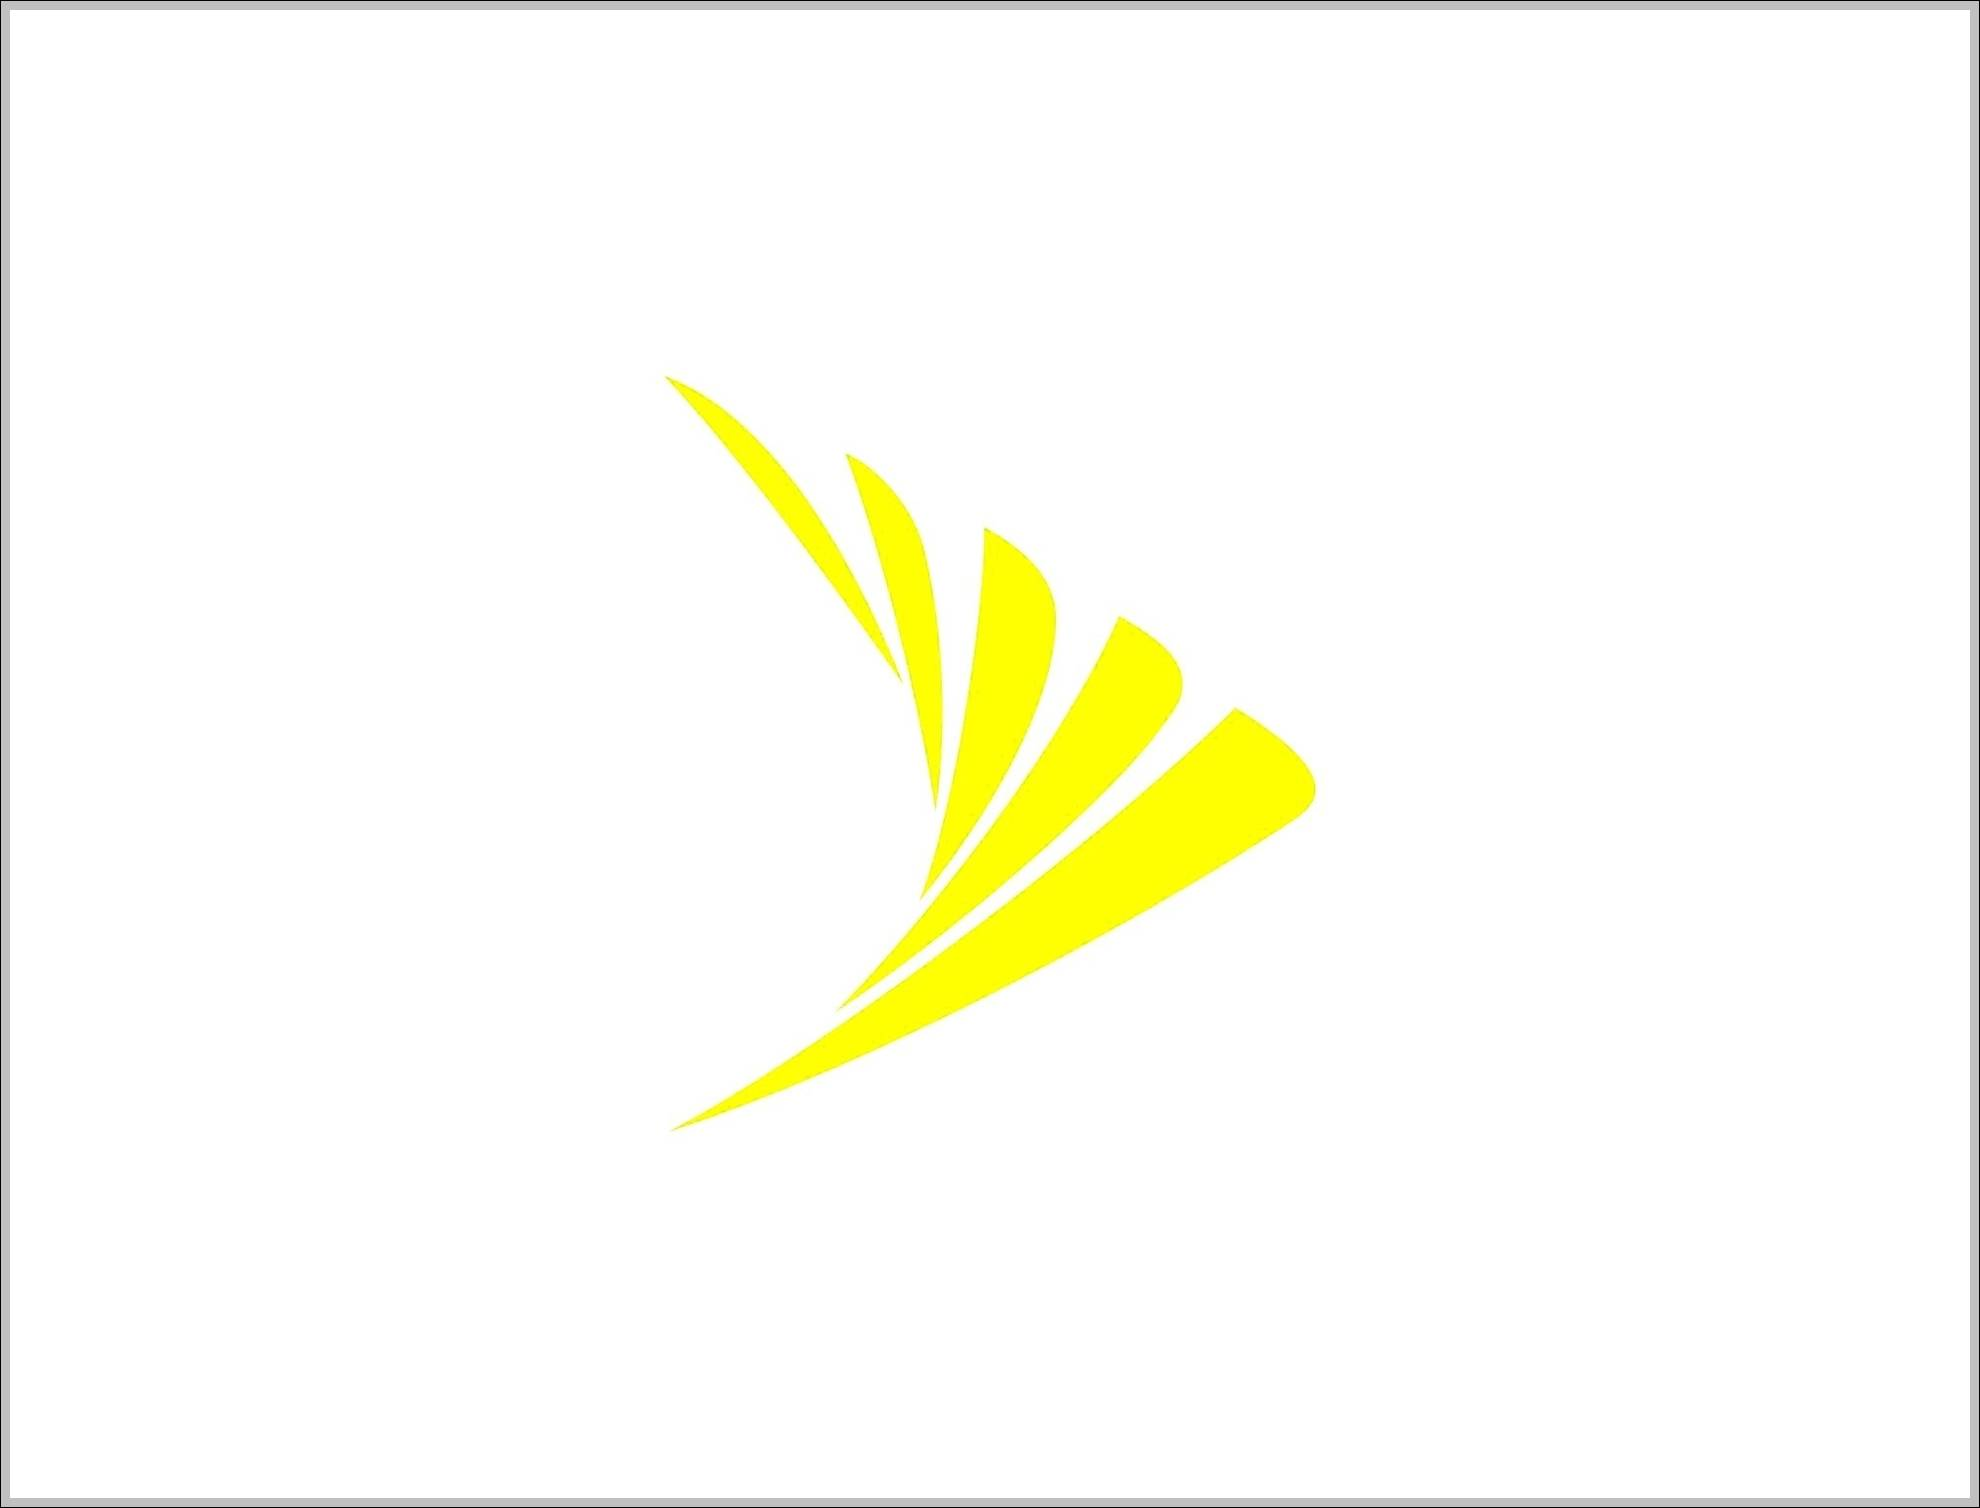 Sprint Logo - sprint trademark | Logo Sign - Logos, Signs, Symbols, Trademarks of ...